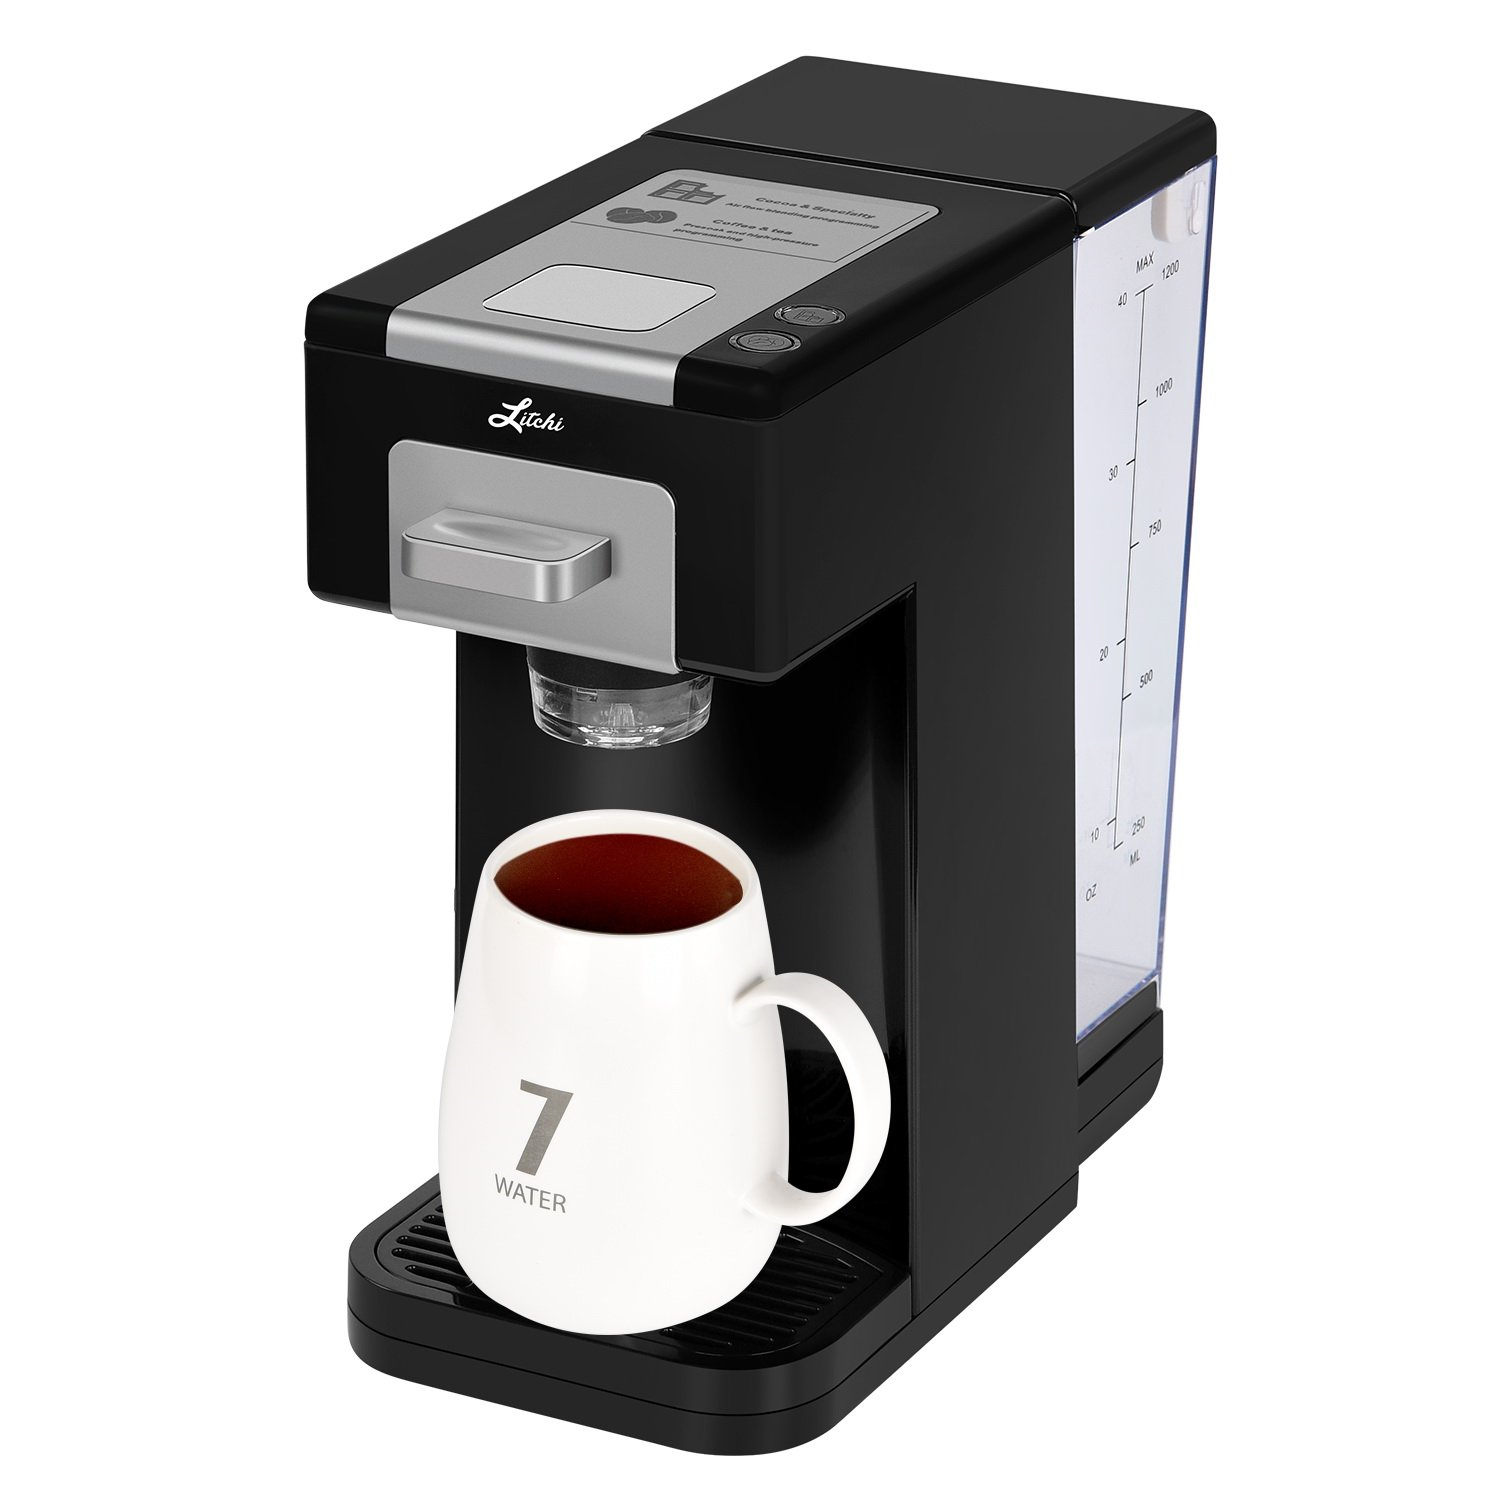 Litchi Single Serve Coffee Maker, Coffee Machine for Most Single Cup Pods Including K Cup Pods, Quick Brew Technology 4 Cup Coffee Maker, Black